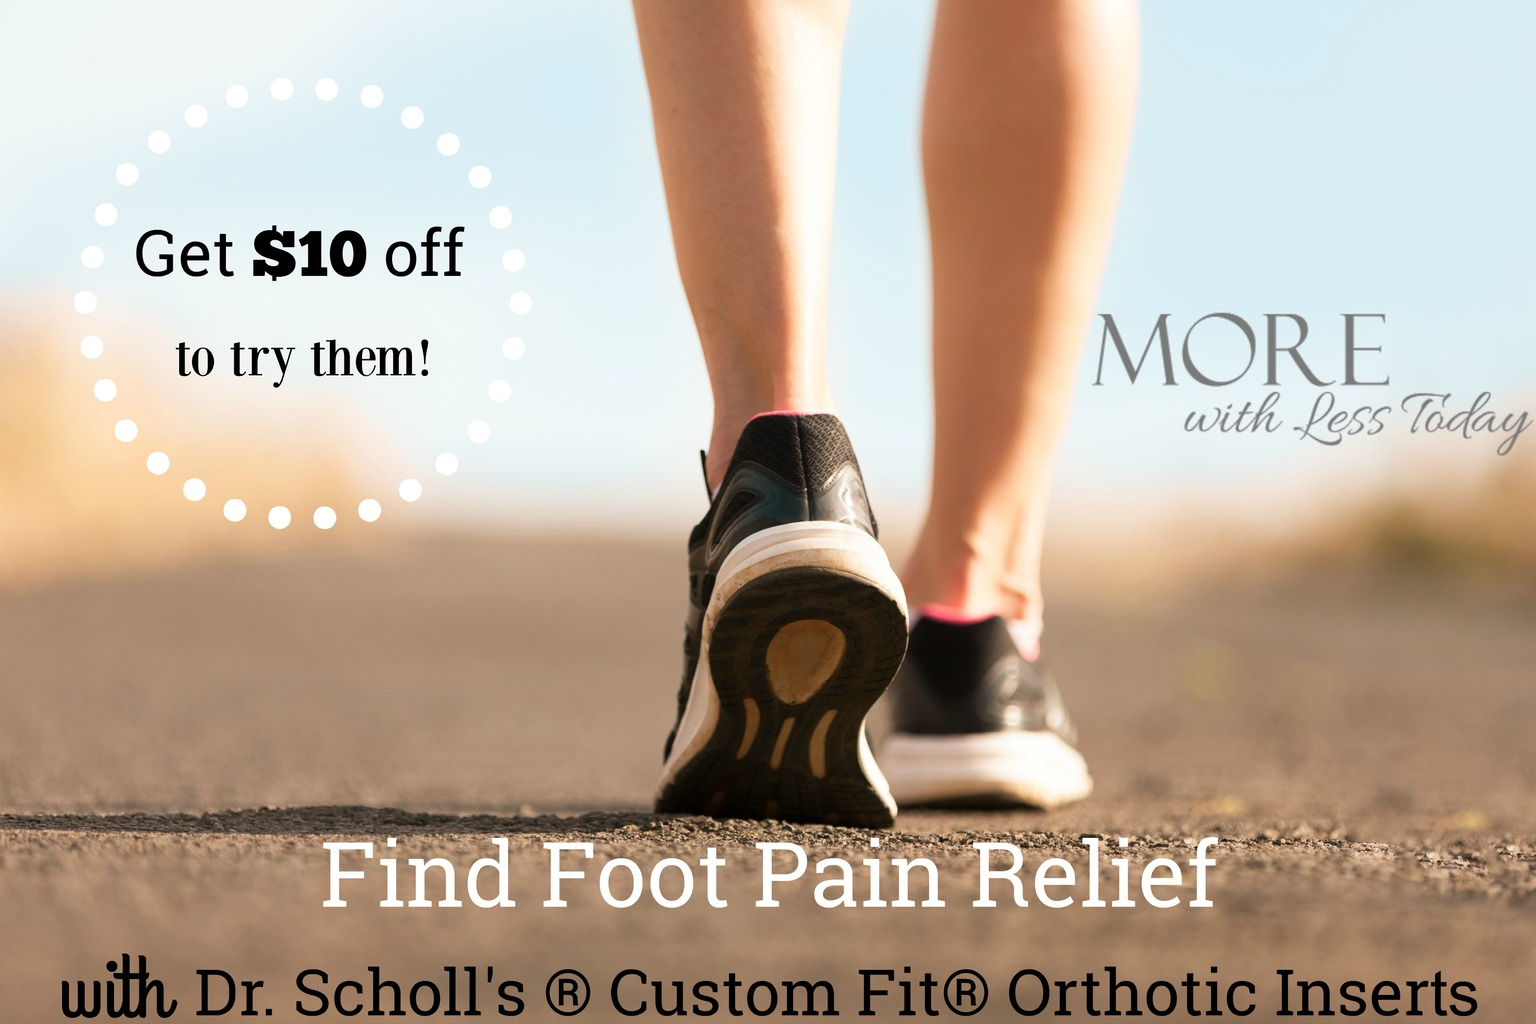 Find Foot Pain Relief With Dr. Scholl's ® Custom Fit ... Dr Scholl Foot Mapping on dr scholl's massager with heat, dr scholl's feet, dr scholl's massaging machine percushion,